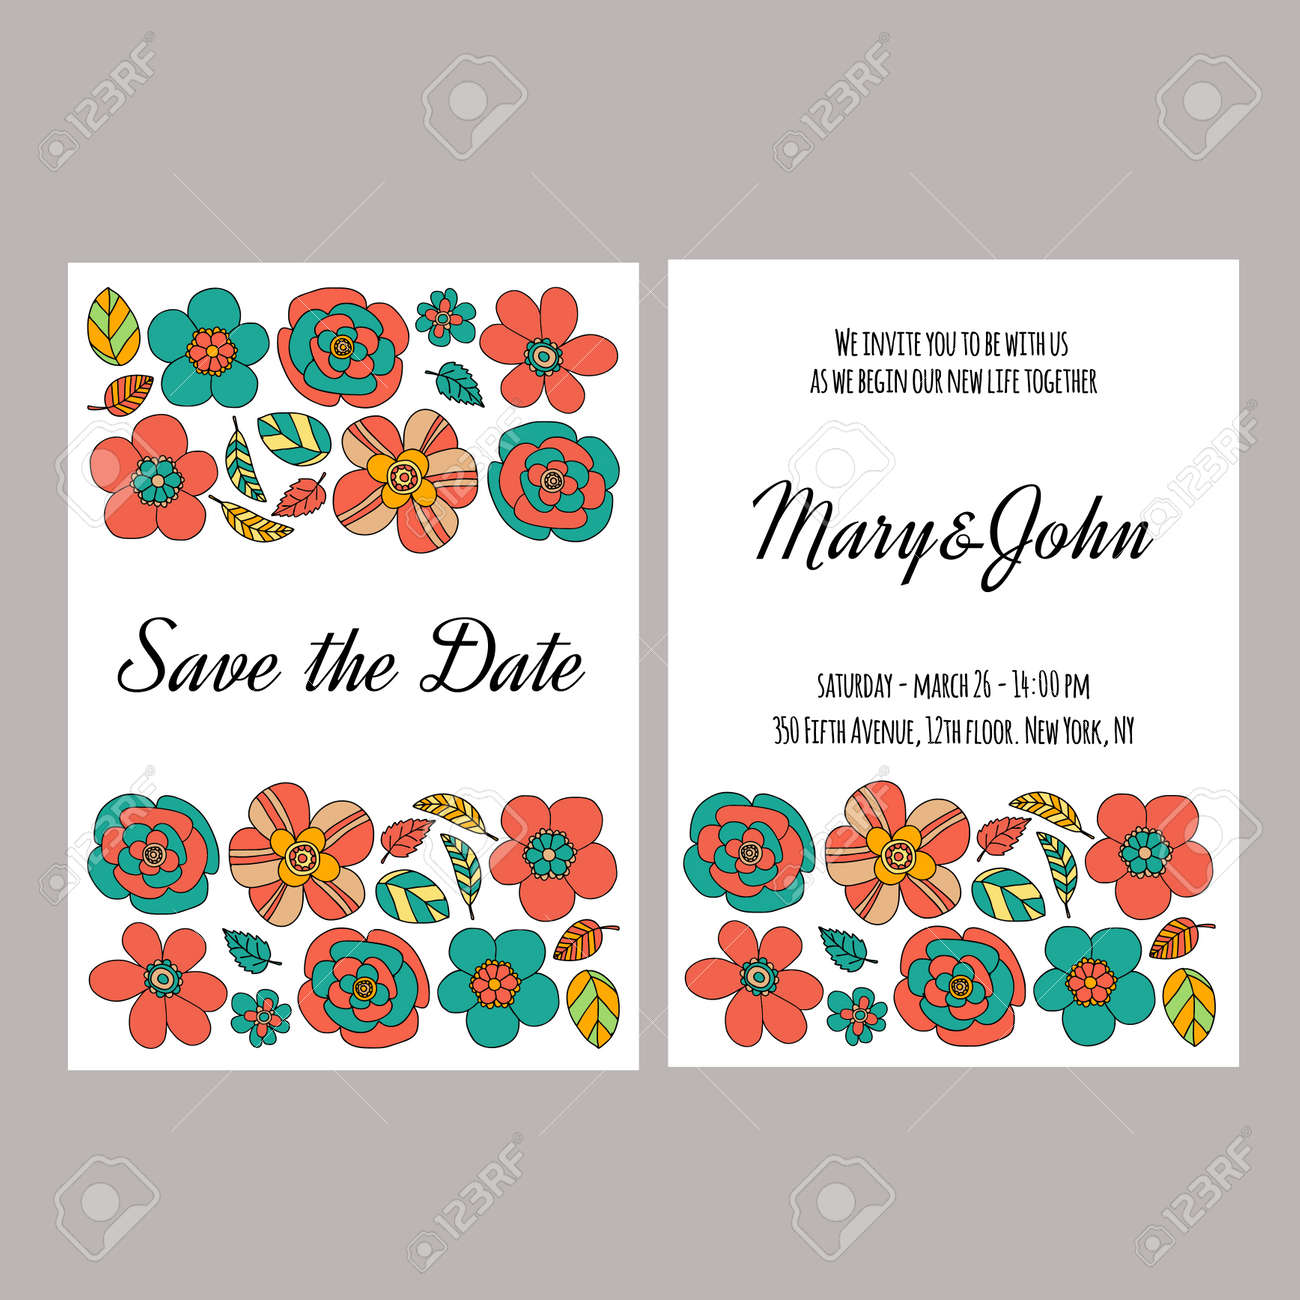 Wedding Invitation Vector Template Hand Drawn Elements Royalty Free ...